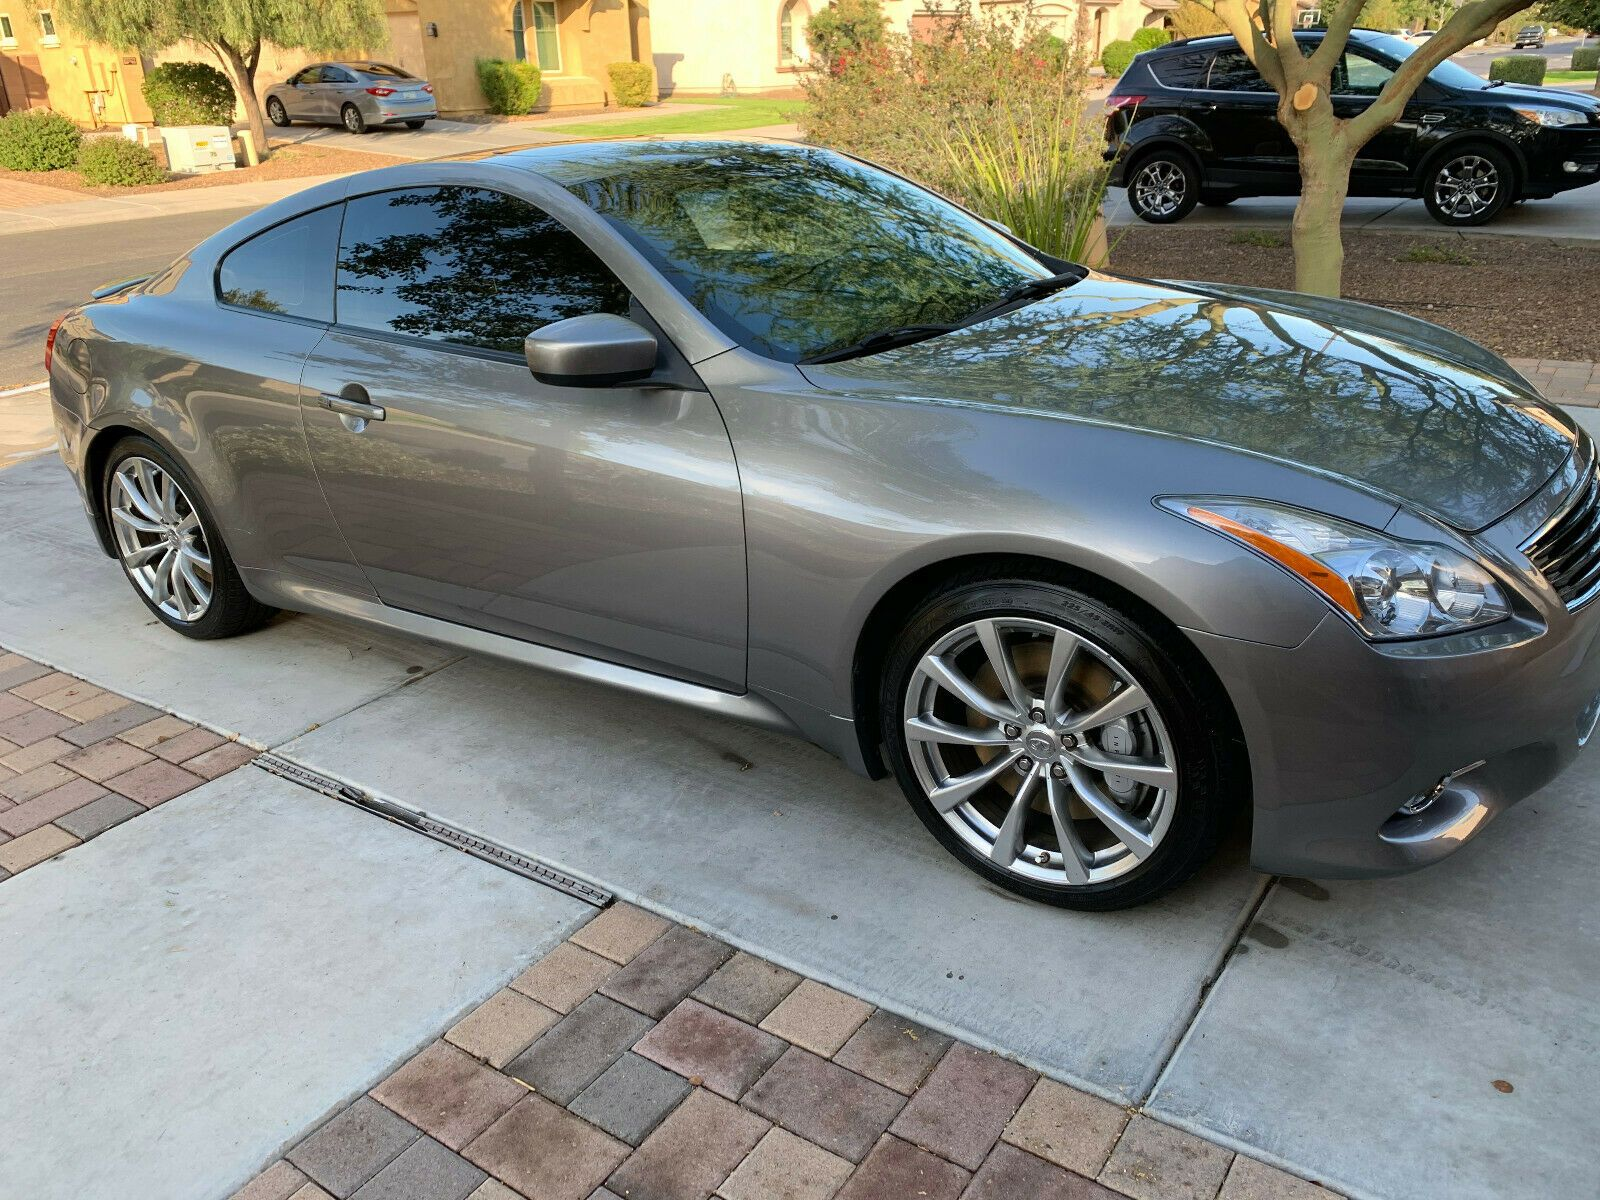 Used 2009 Infiniti G37 Journey Sport olid and reliable